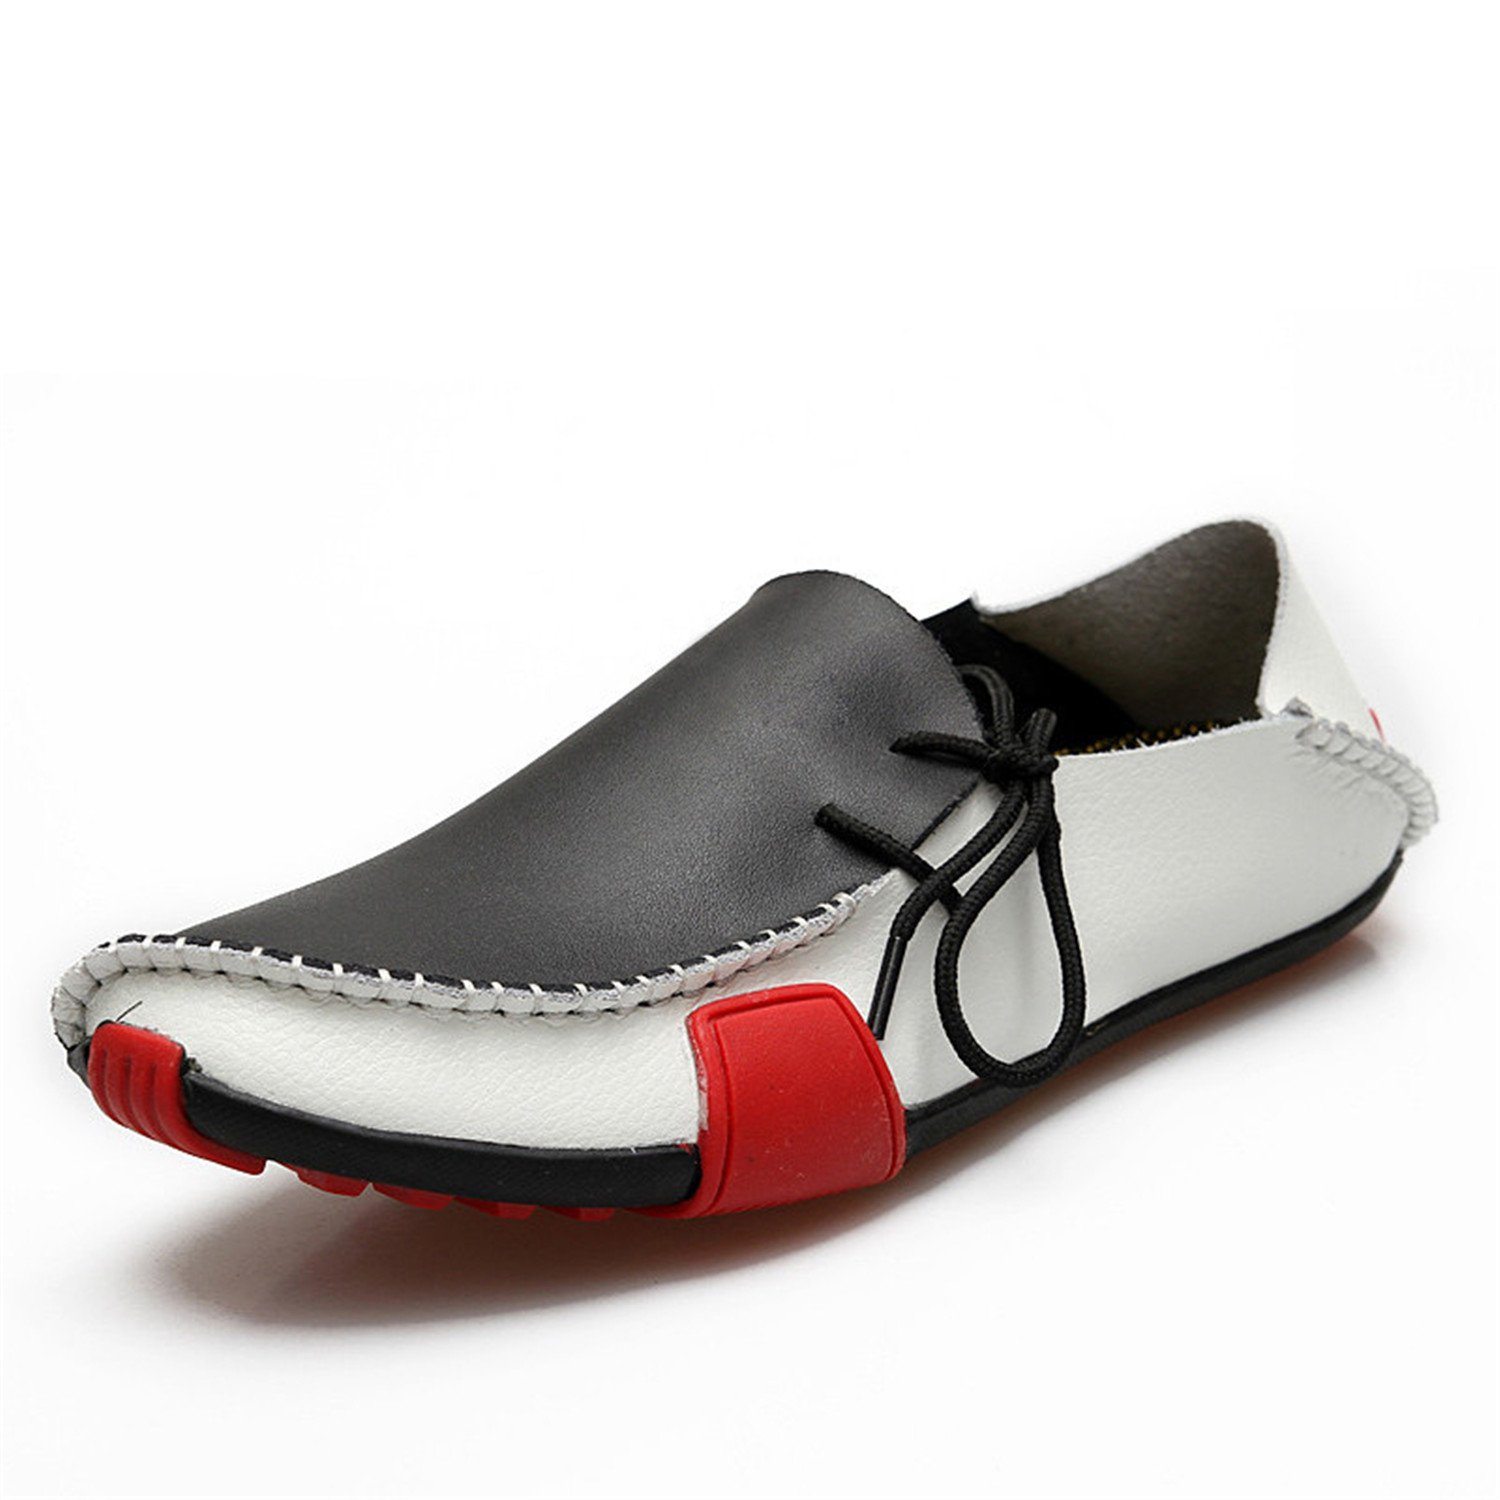 Amazon.com | Orcan Bluce Men Leather Loafers Summer Autumn Shoes Casual for Driving Big Size 38-47 | Loafers & Slip-Ons